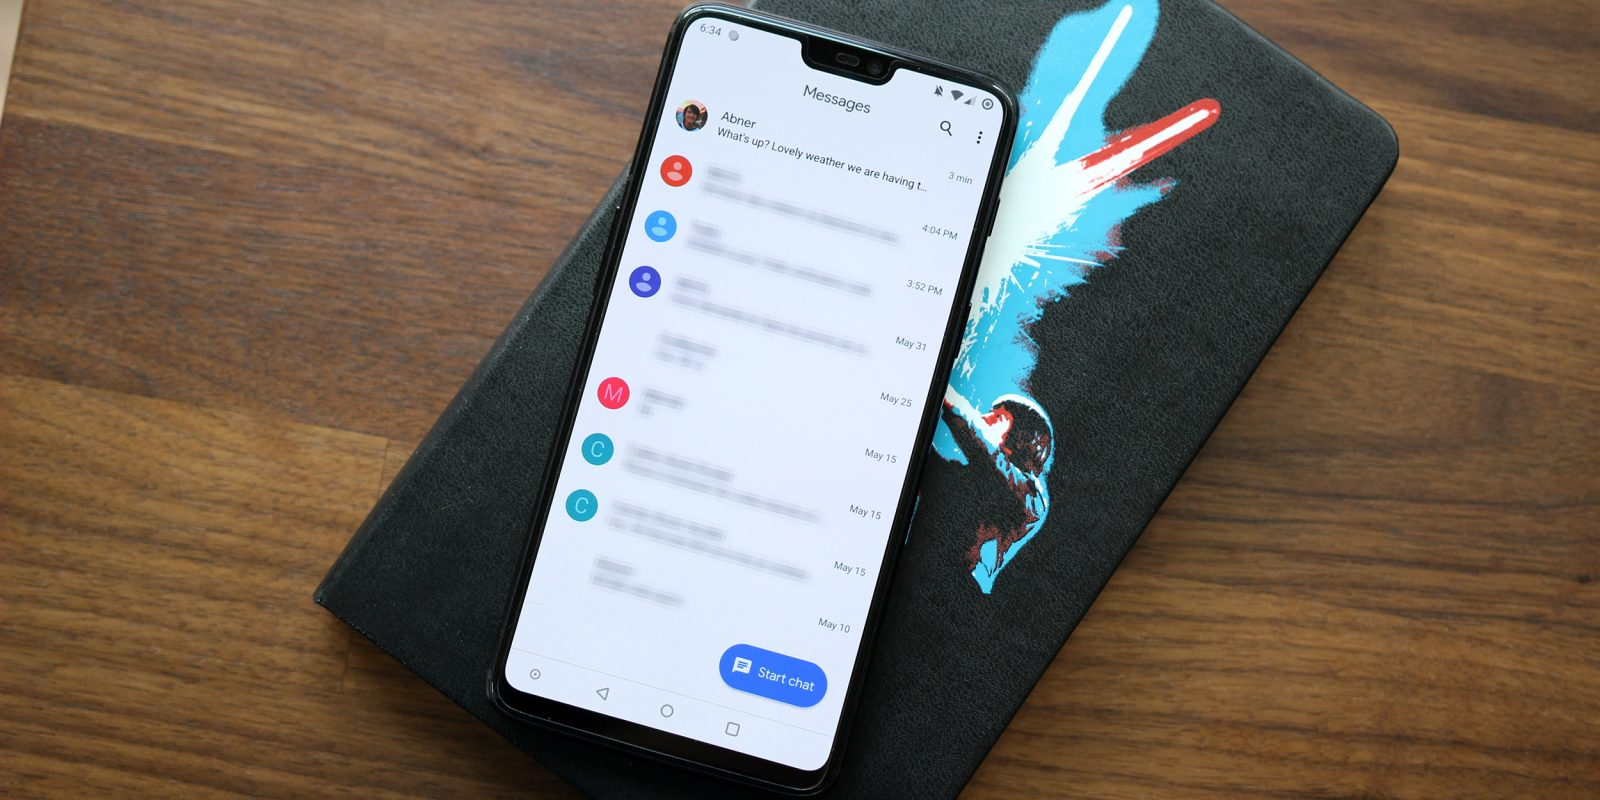 Android Messages 3 5 rolling out w/ Material Theme and dark